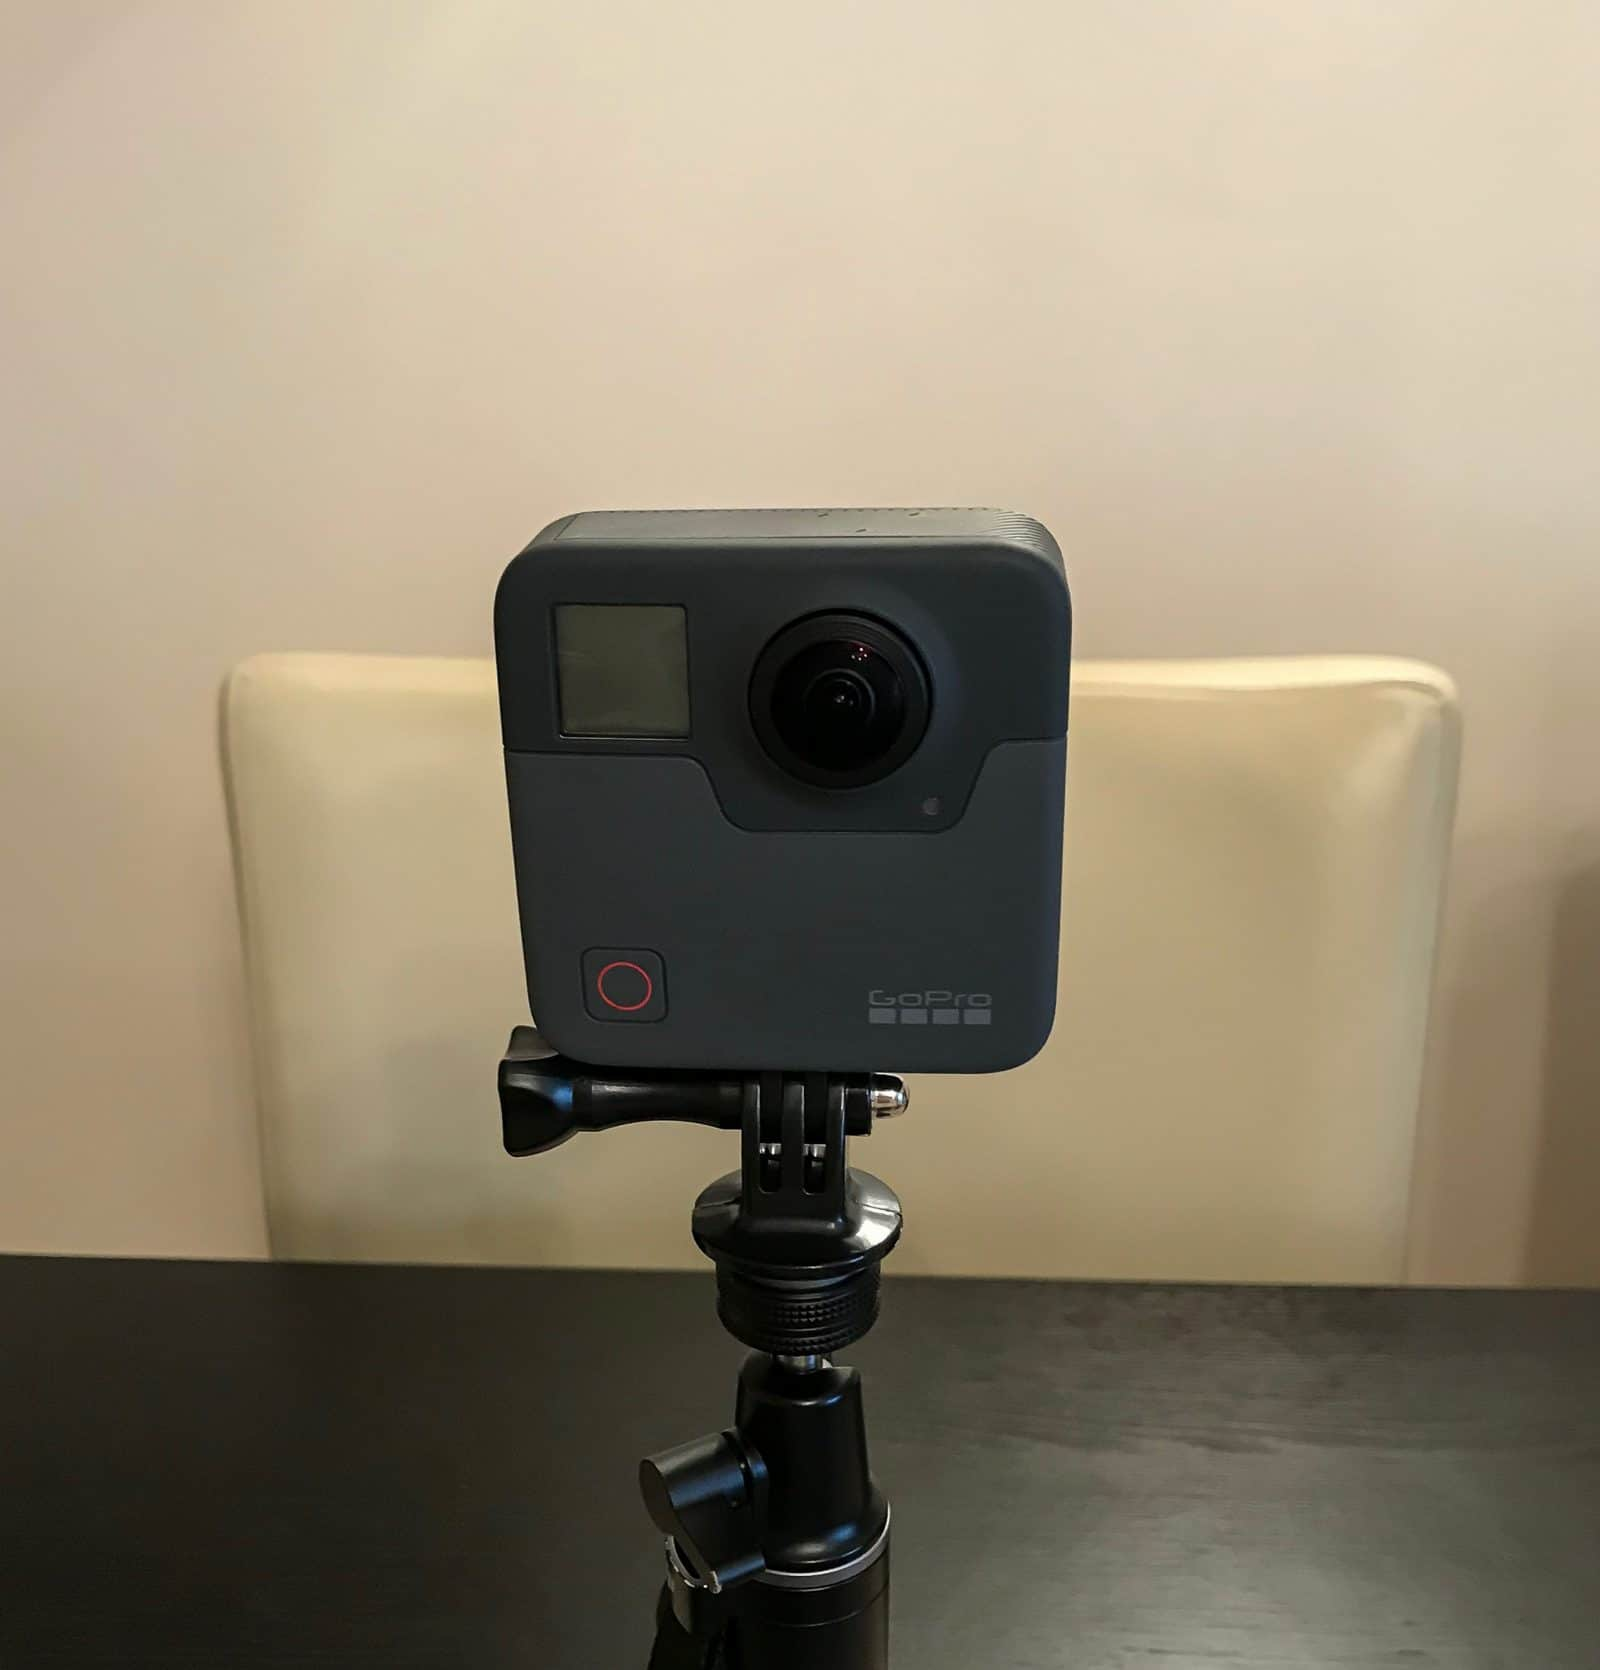 360 cameras, 360 photography, 360 panoramas, 360 aerial panoramas, litchi app, litchi mission hub,360 video, google street view